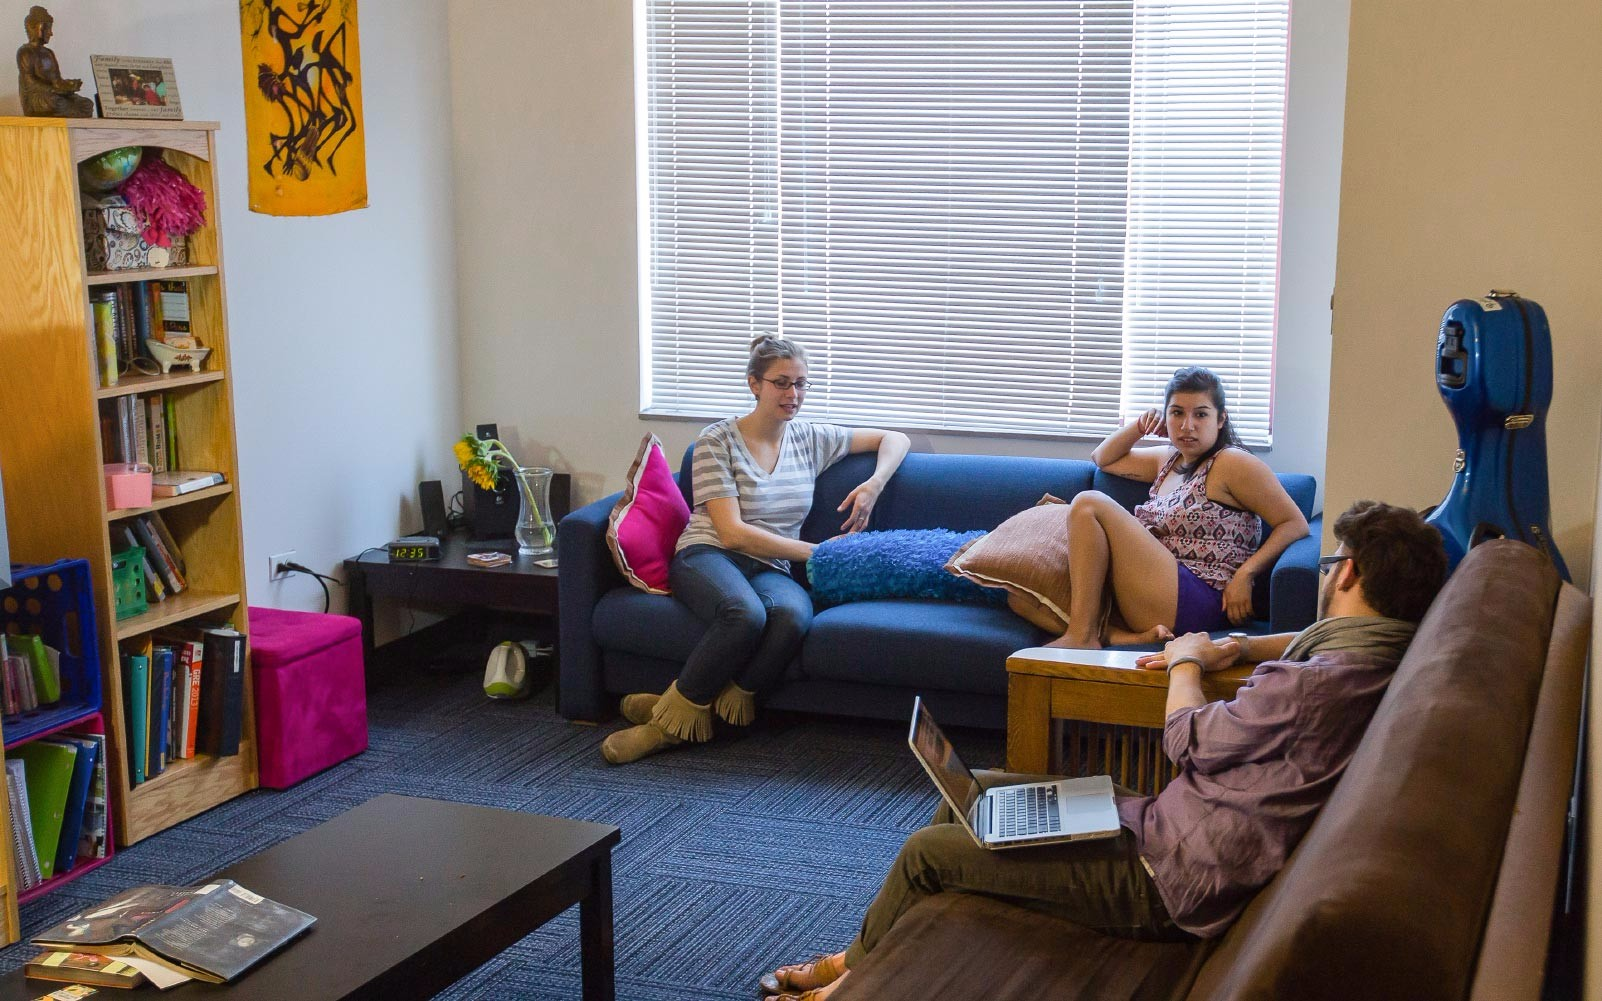 Students lounging in a dorm room.